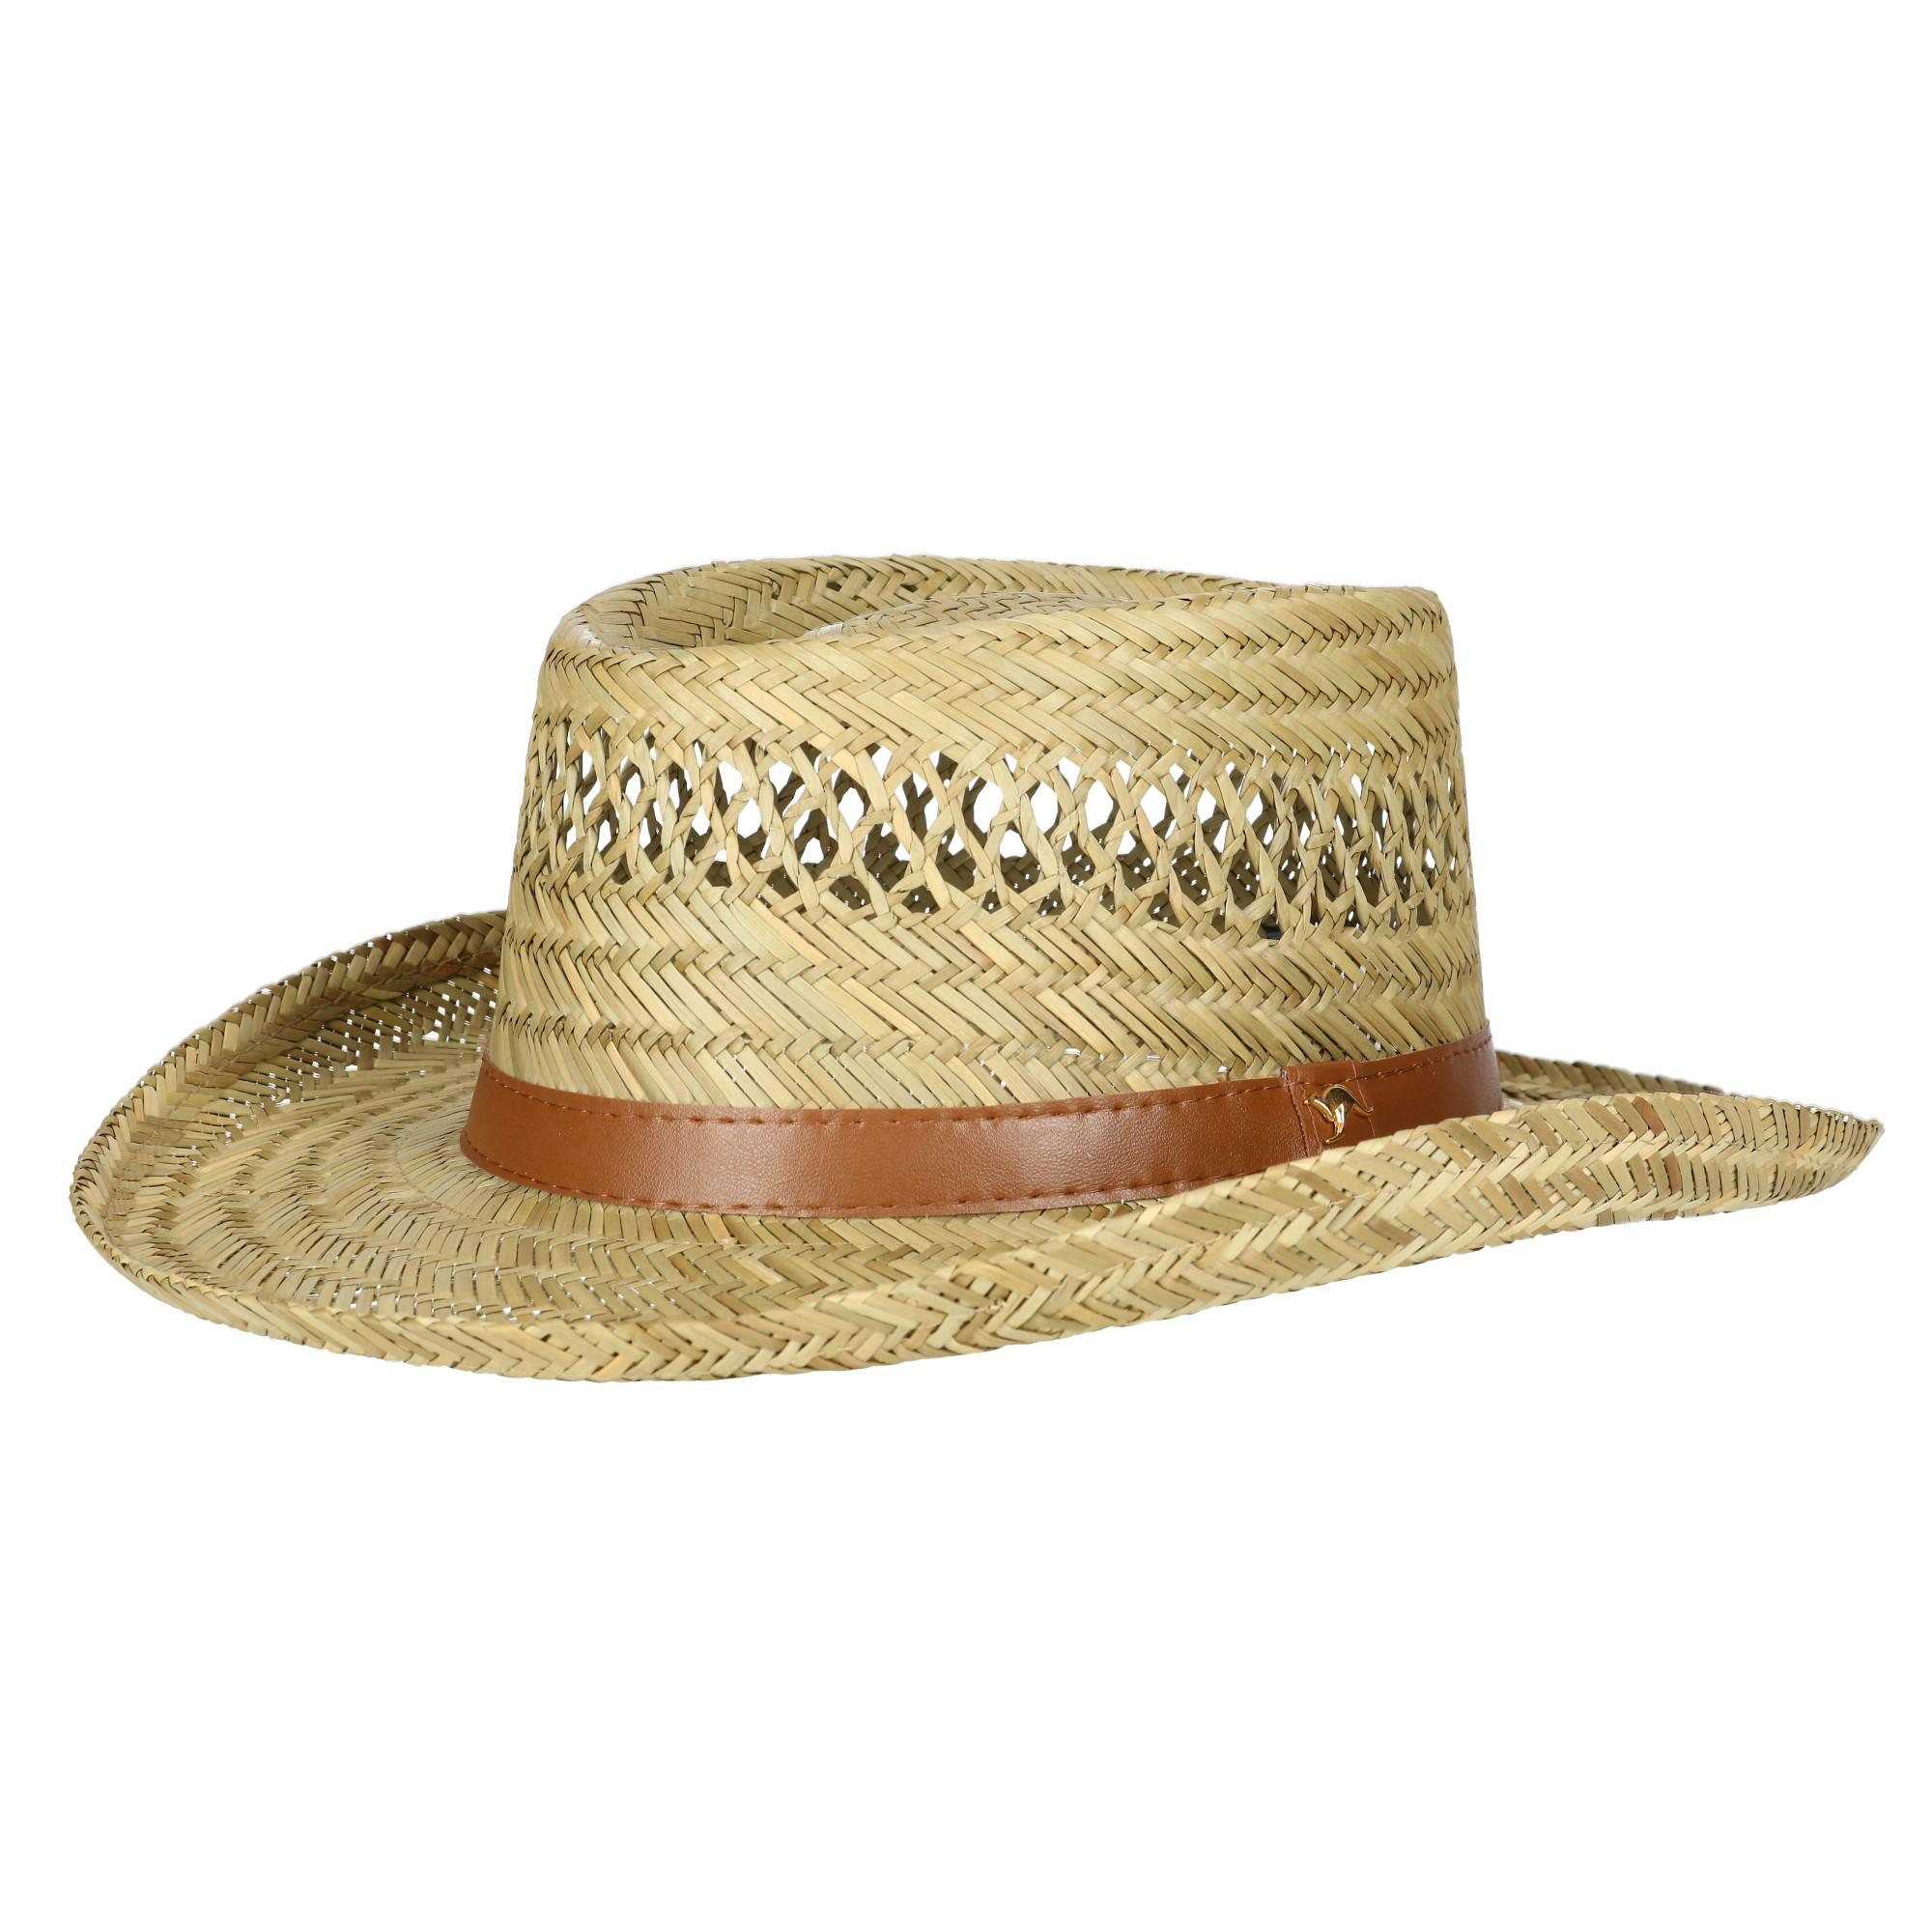 Dorfman Pacific Rush Straw Lightweight Gambler Hat with Wide Brim 1151559e5167